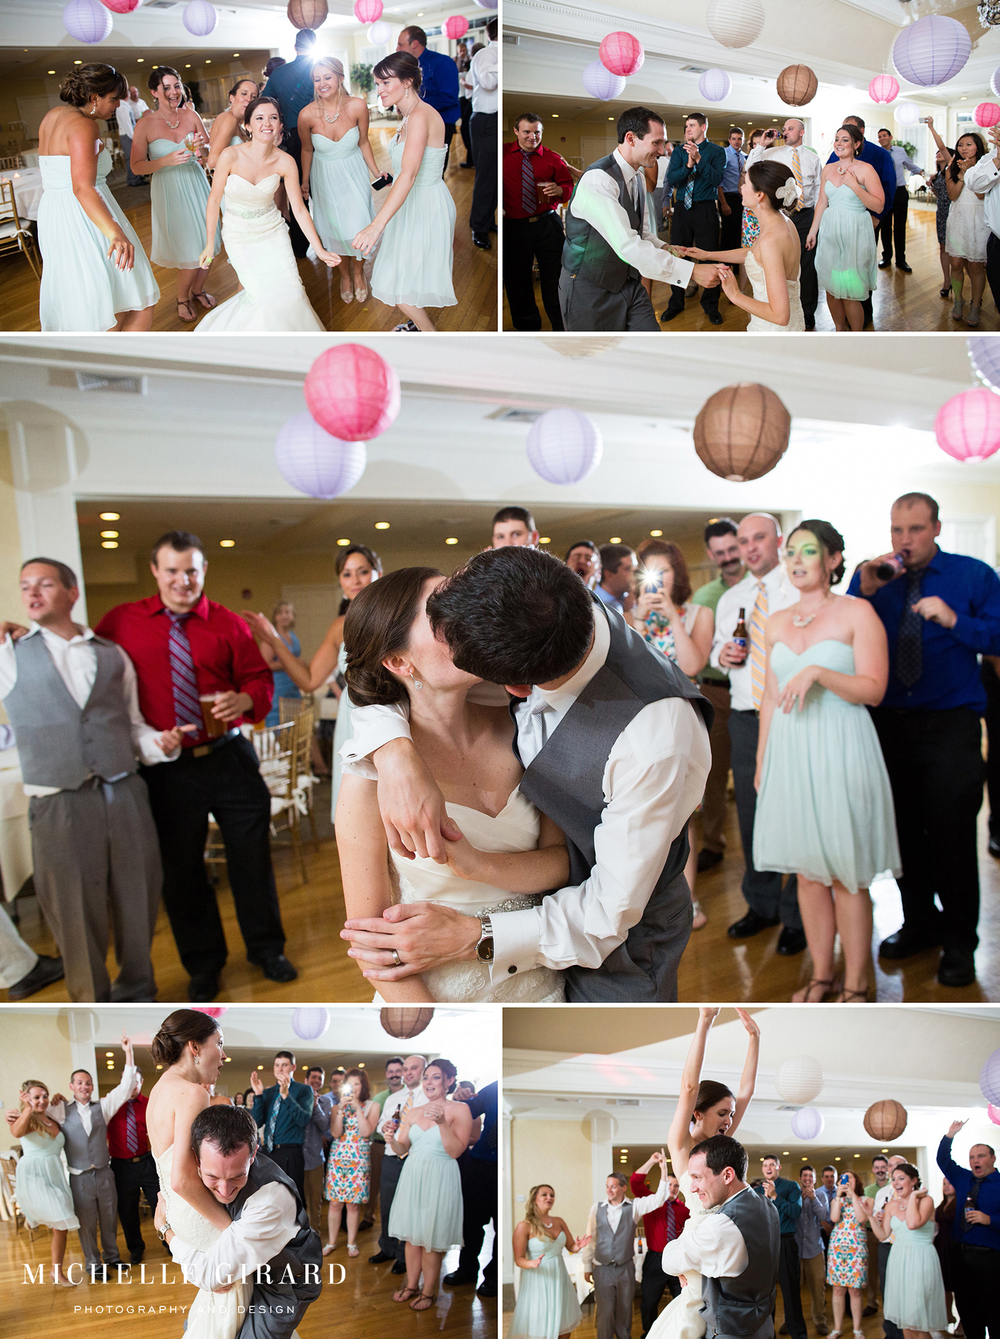 CountryClubofPittsfield_SummerWedding_BerkshireCounty_MichelleGirardPhotography_34.jpg